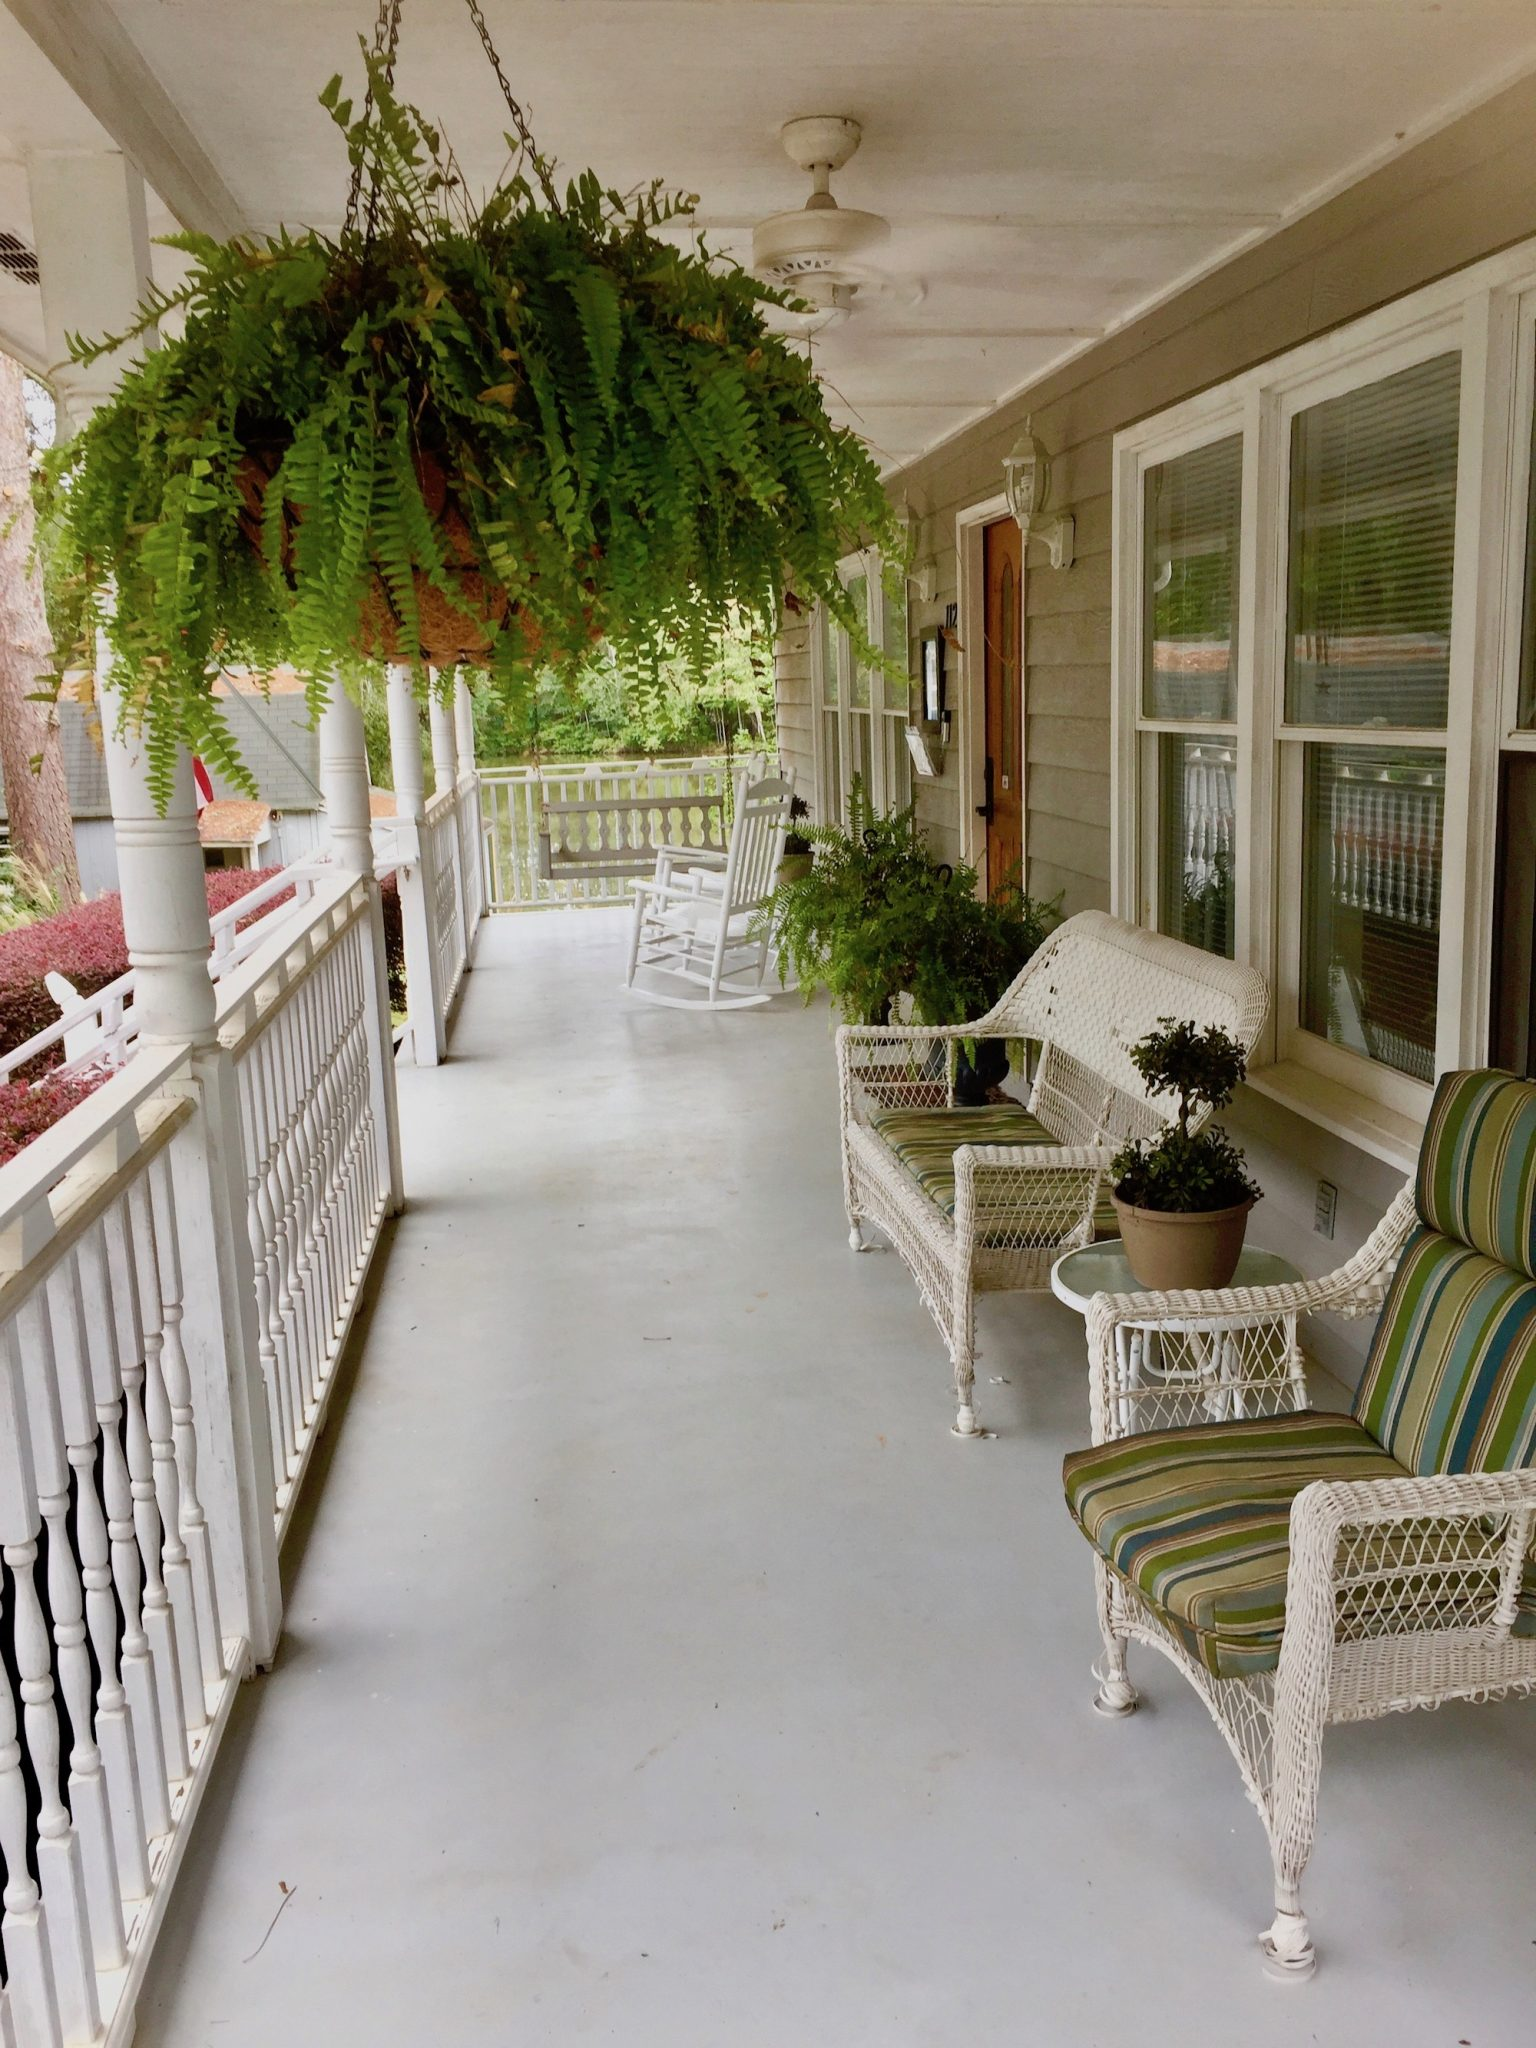 Outdoor fun in Henry County might be as simple as rocking on the front porch of a B&B.